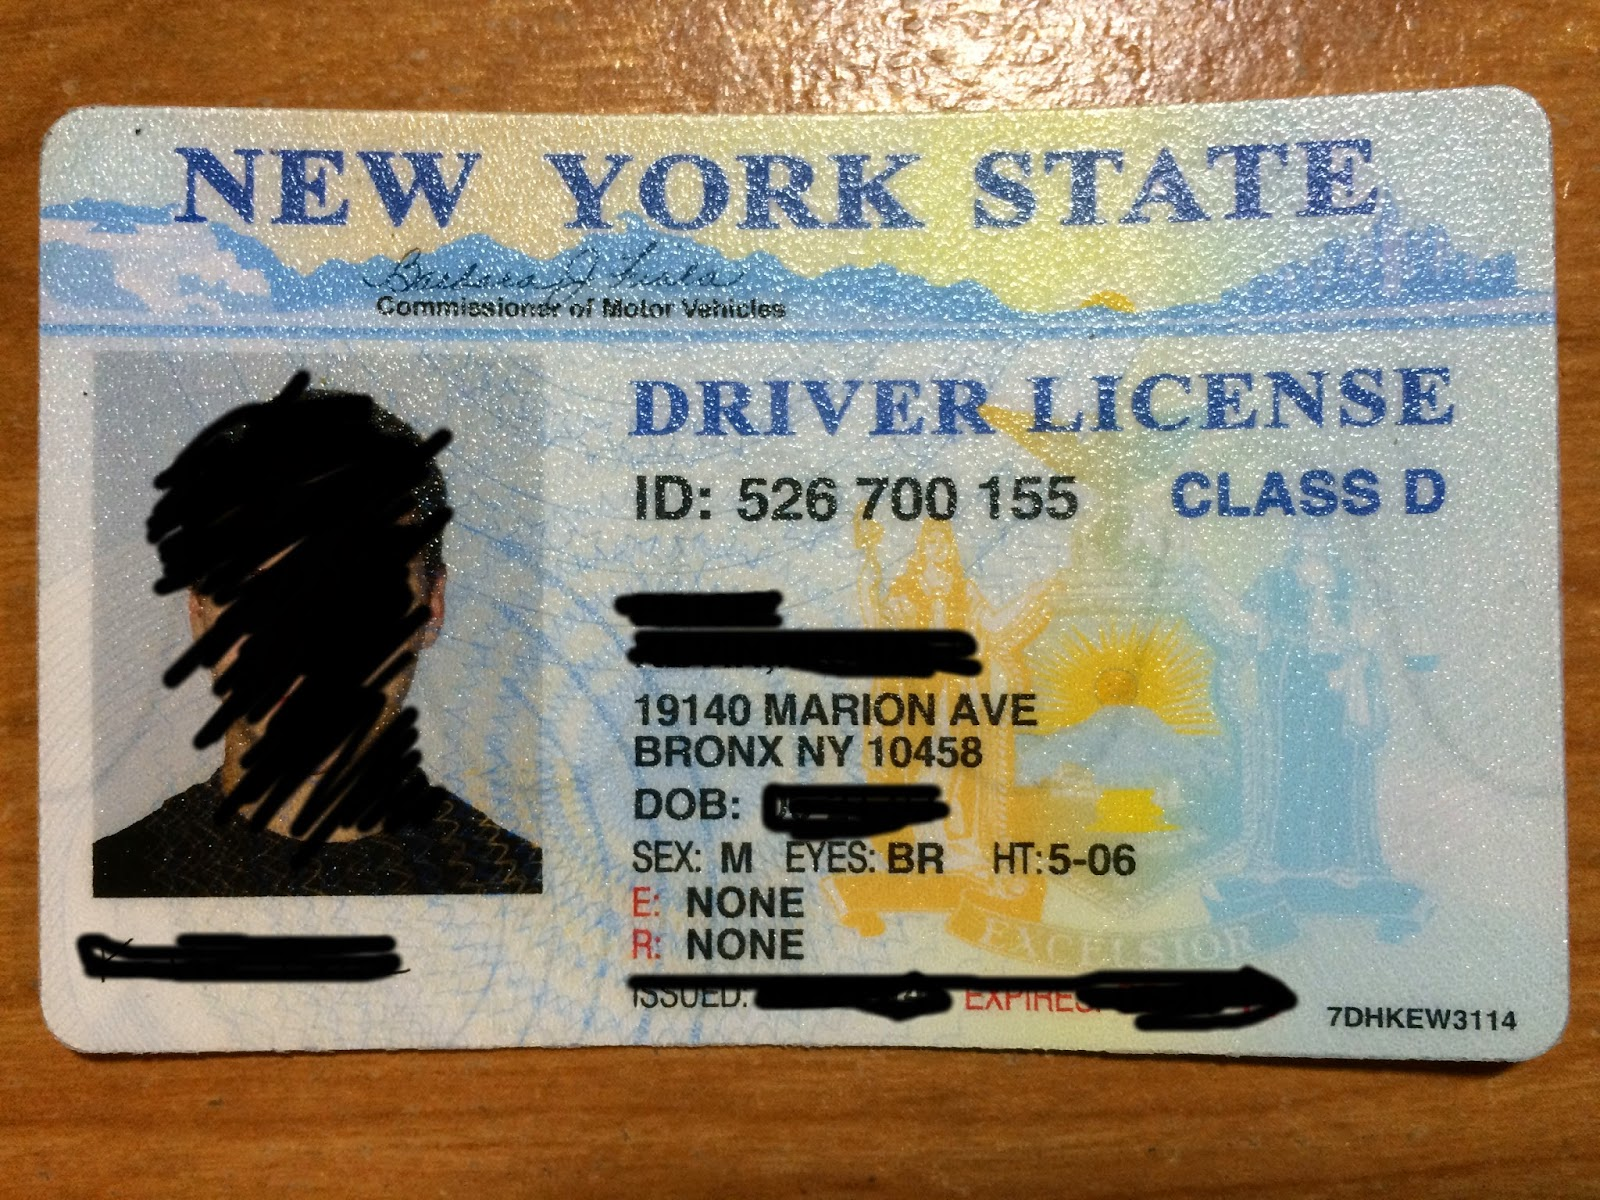 Fakes Good Really Rgf Review Reviews New - York Id Old